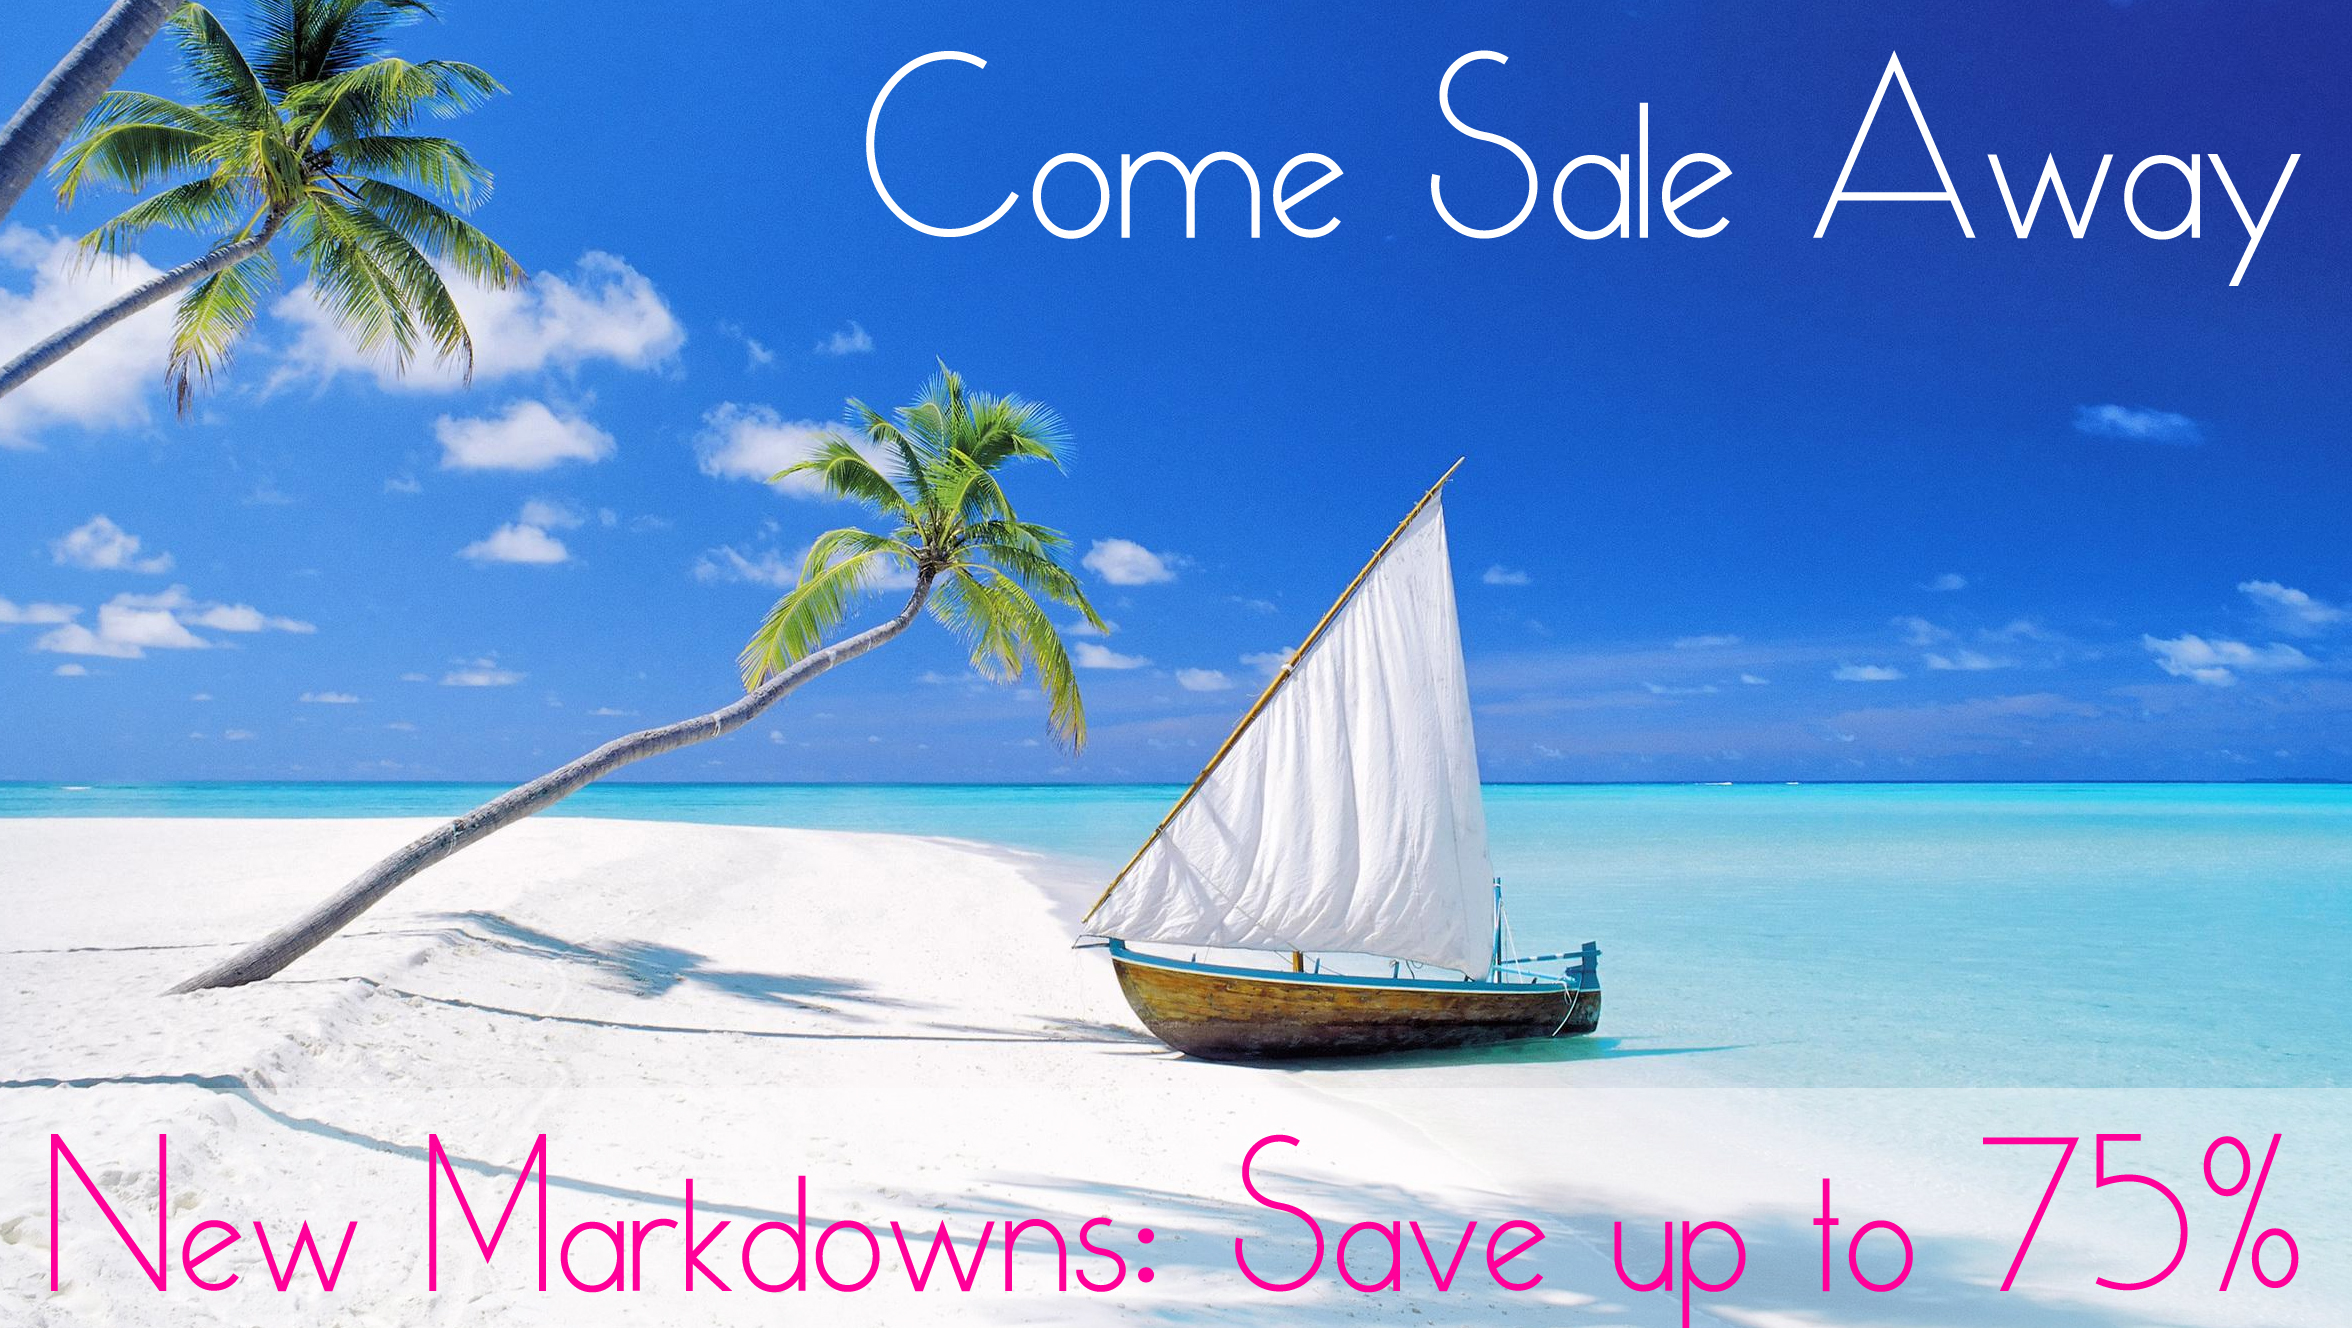 save up to 75% off original prices with new markdowns at Sachi Girl